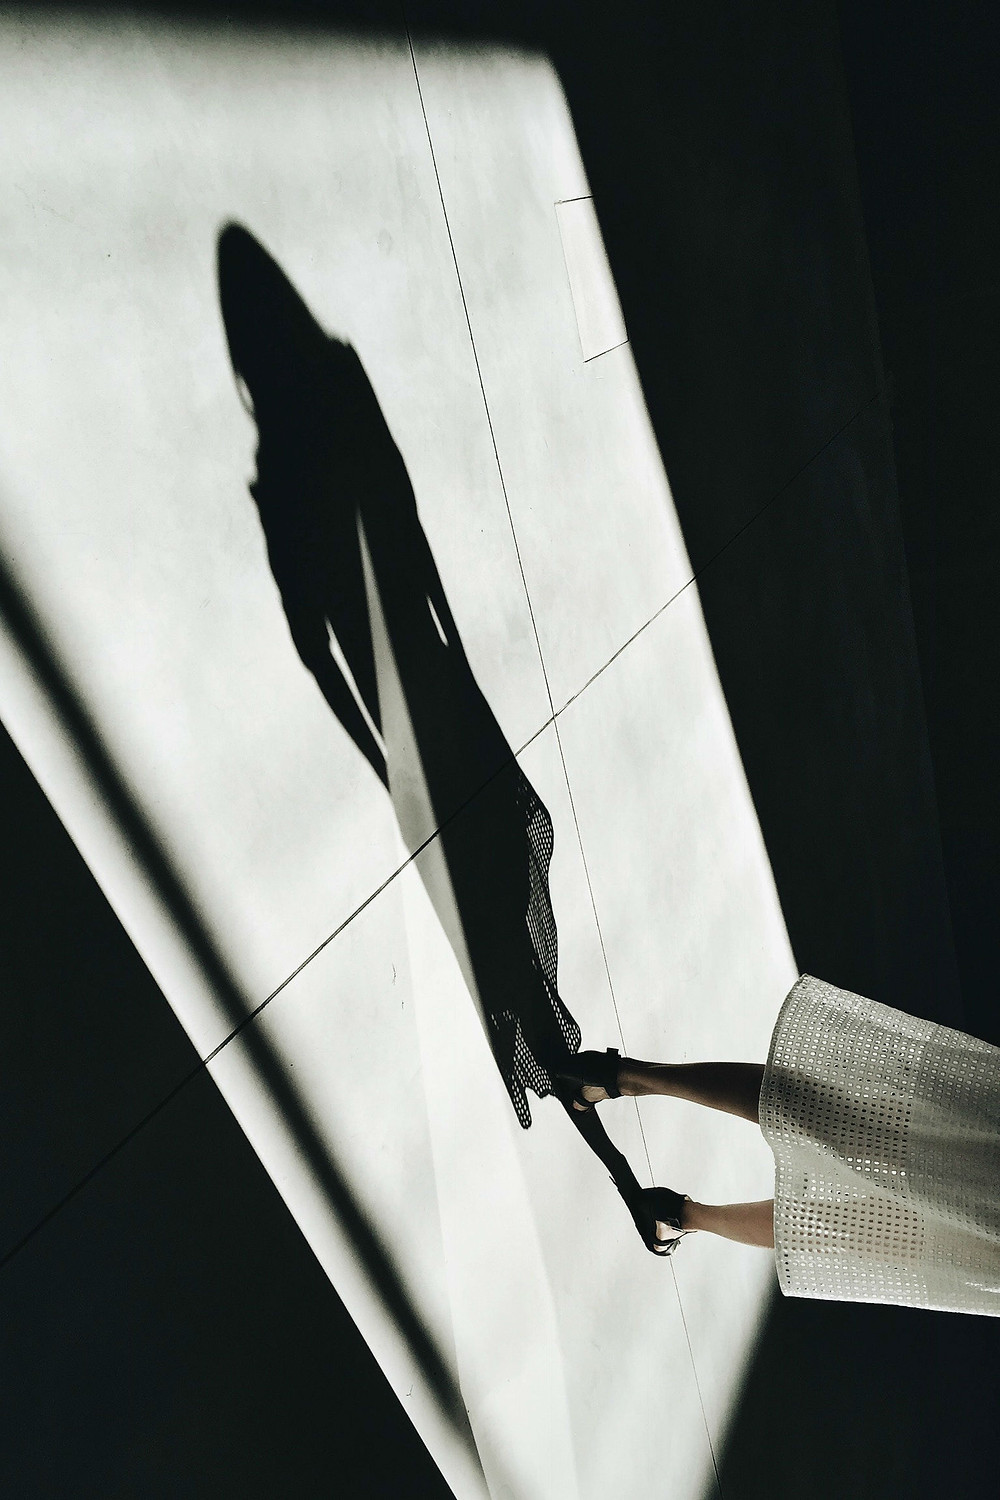 Photo of the shadow of a woman on a light coloured floor, with the woman's legs, feet and white skirt visible to the right of the image. Photograph courtesy of Martino Pietropoli via Unsplash.